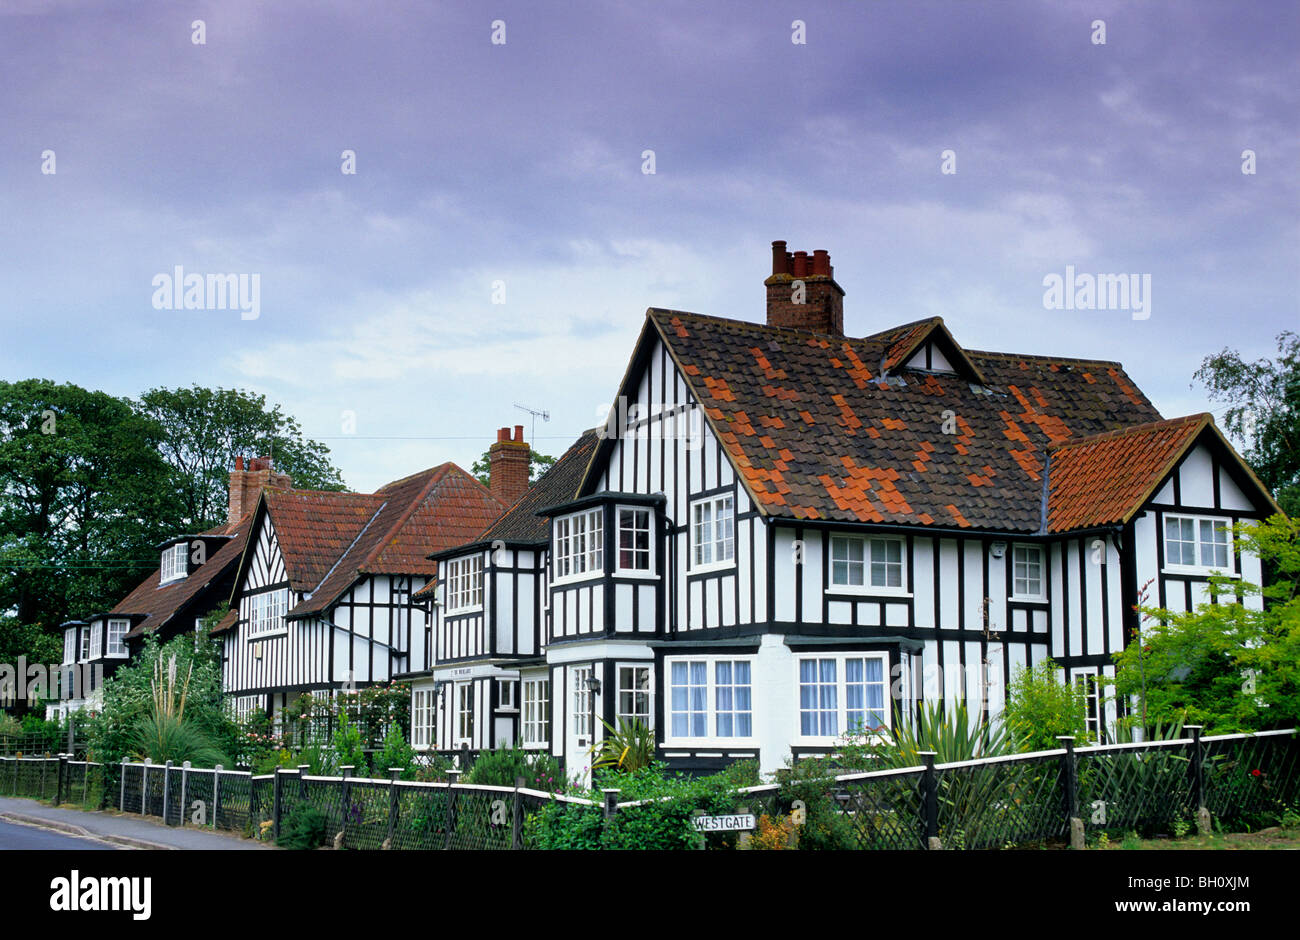 Europe, England, Suffolk, The Winlands, Thorpeness, Cottages - Stock Image